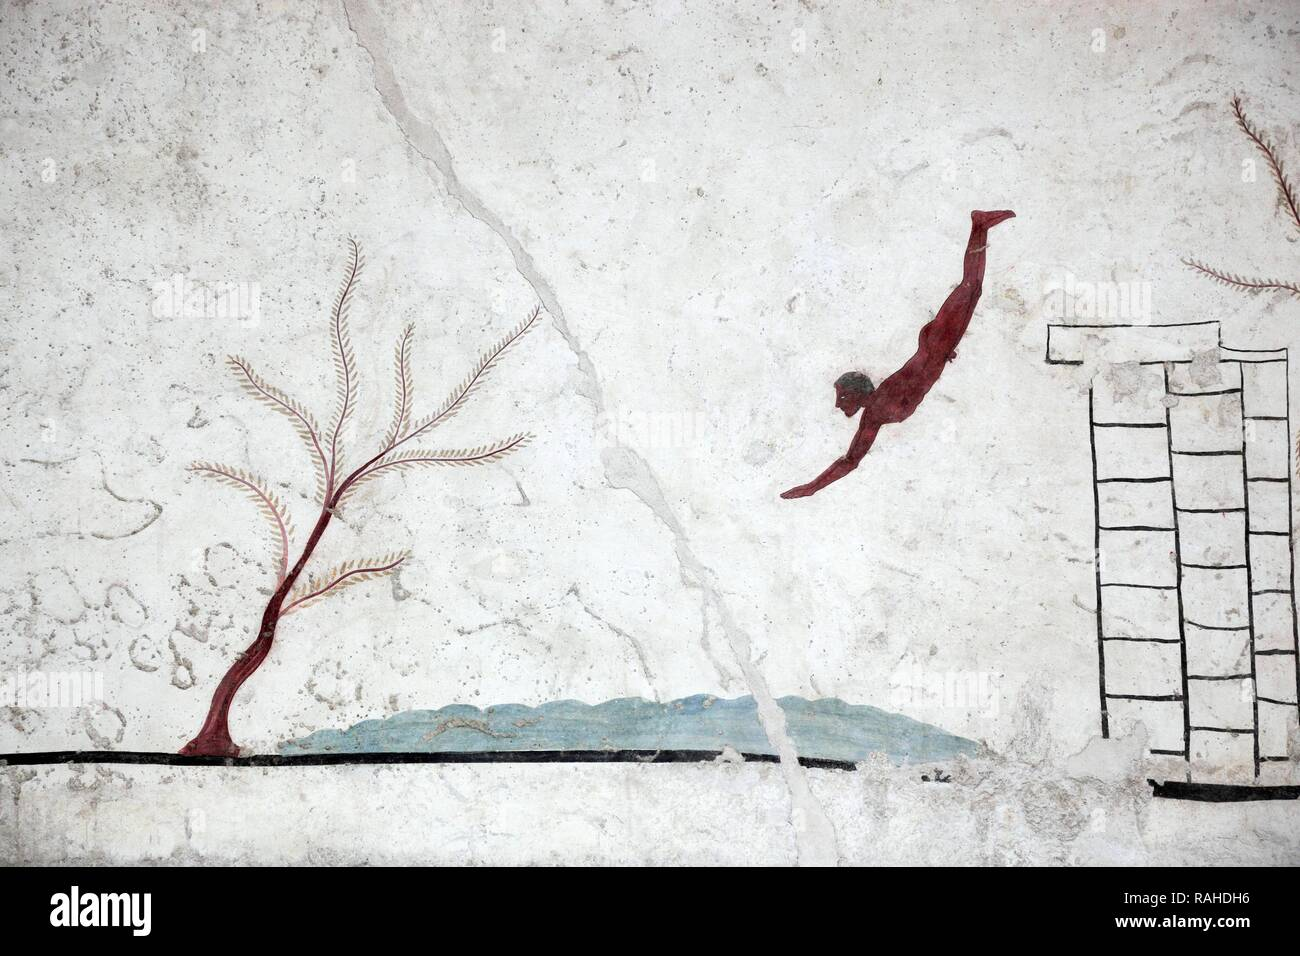 Tomba del Tuffatore, grave slab on the Tomb of the Diver, about 480 BC, Paestum, Campania, Italy, Europe - Stock Image